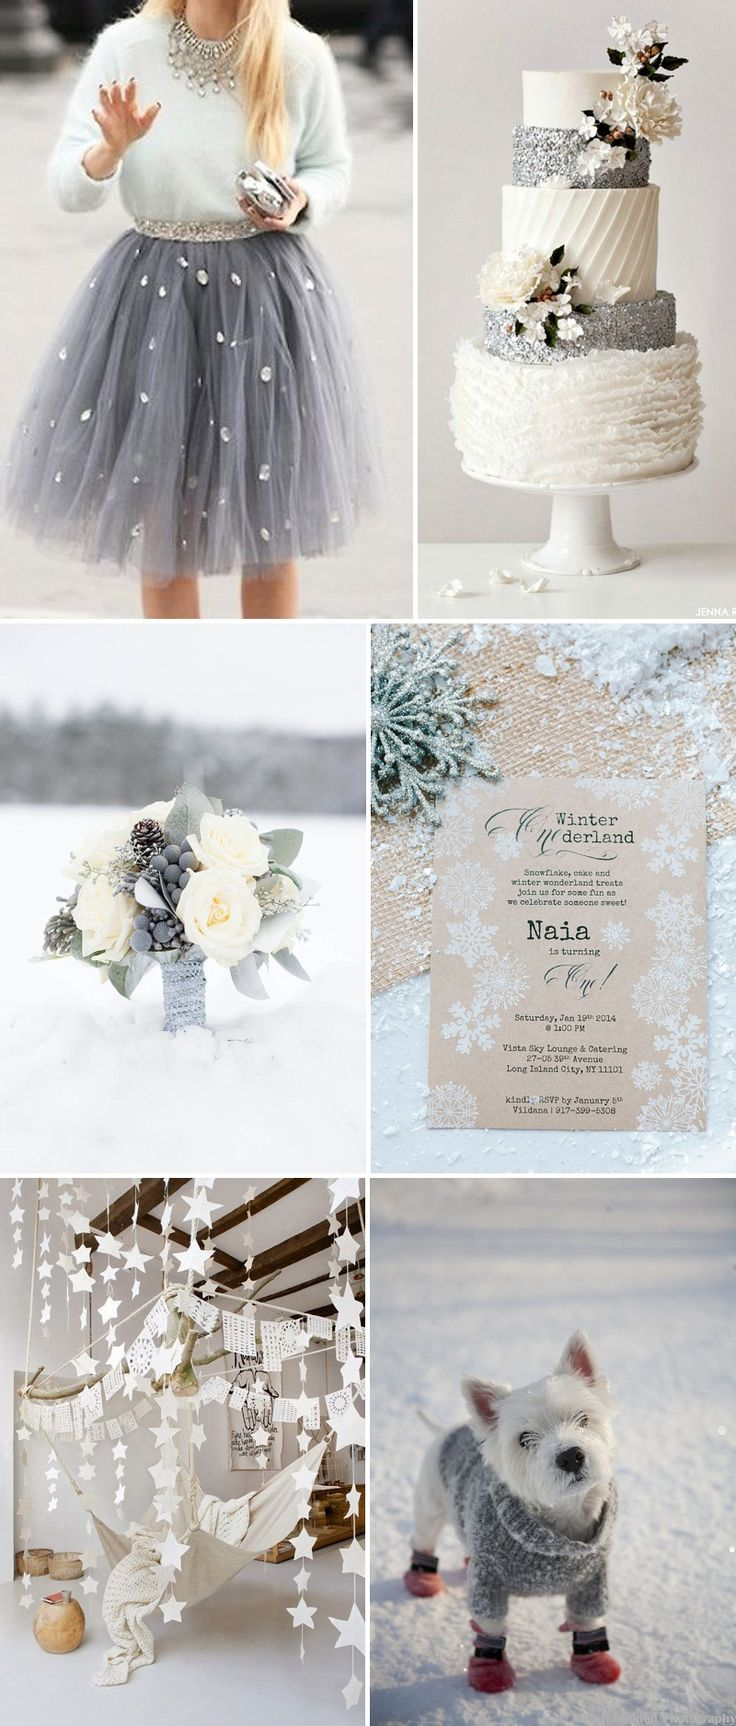 Silver pearl marisol white lace 1 - A Guide To Styling A Winter Wedding With Silver Metallic Accents And Faux Fur Details And Lots Of Candles